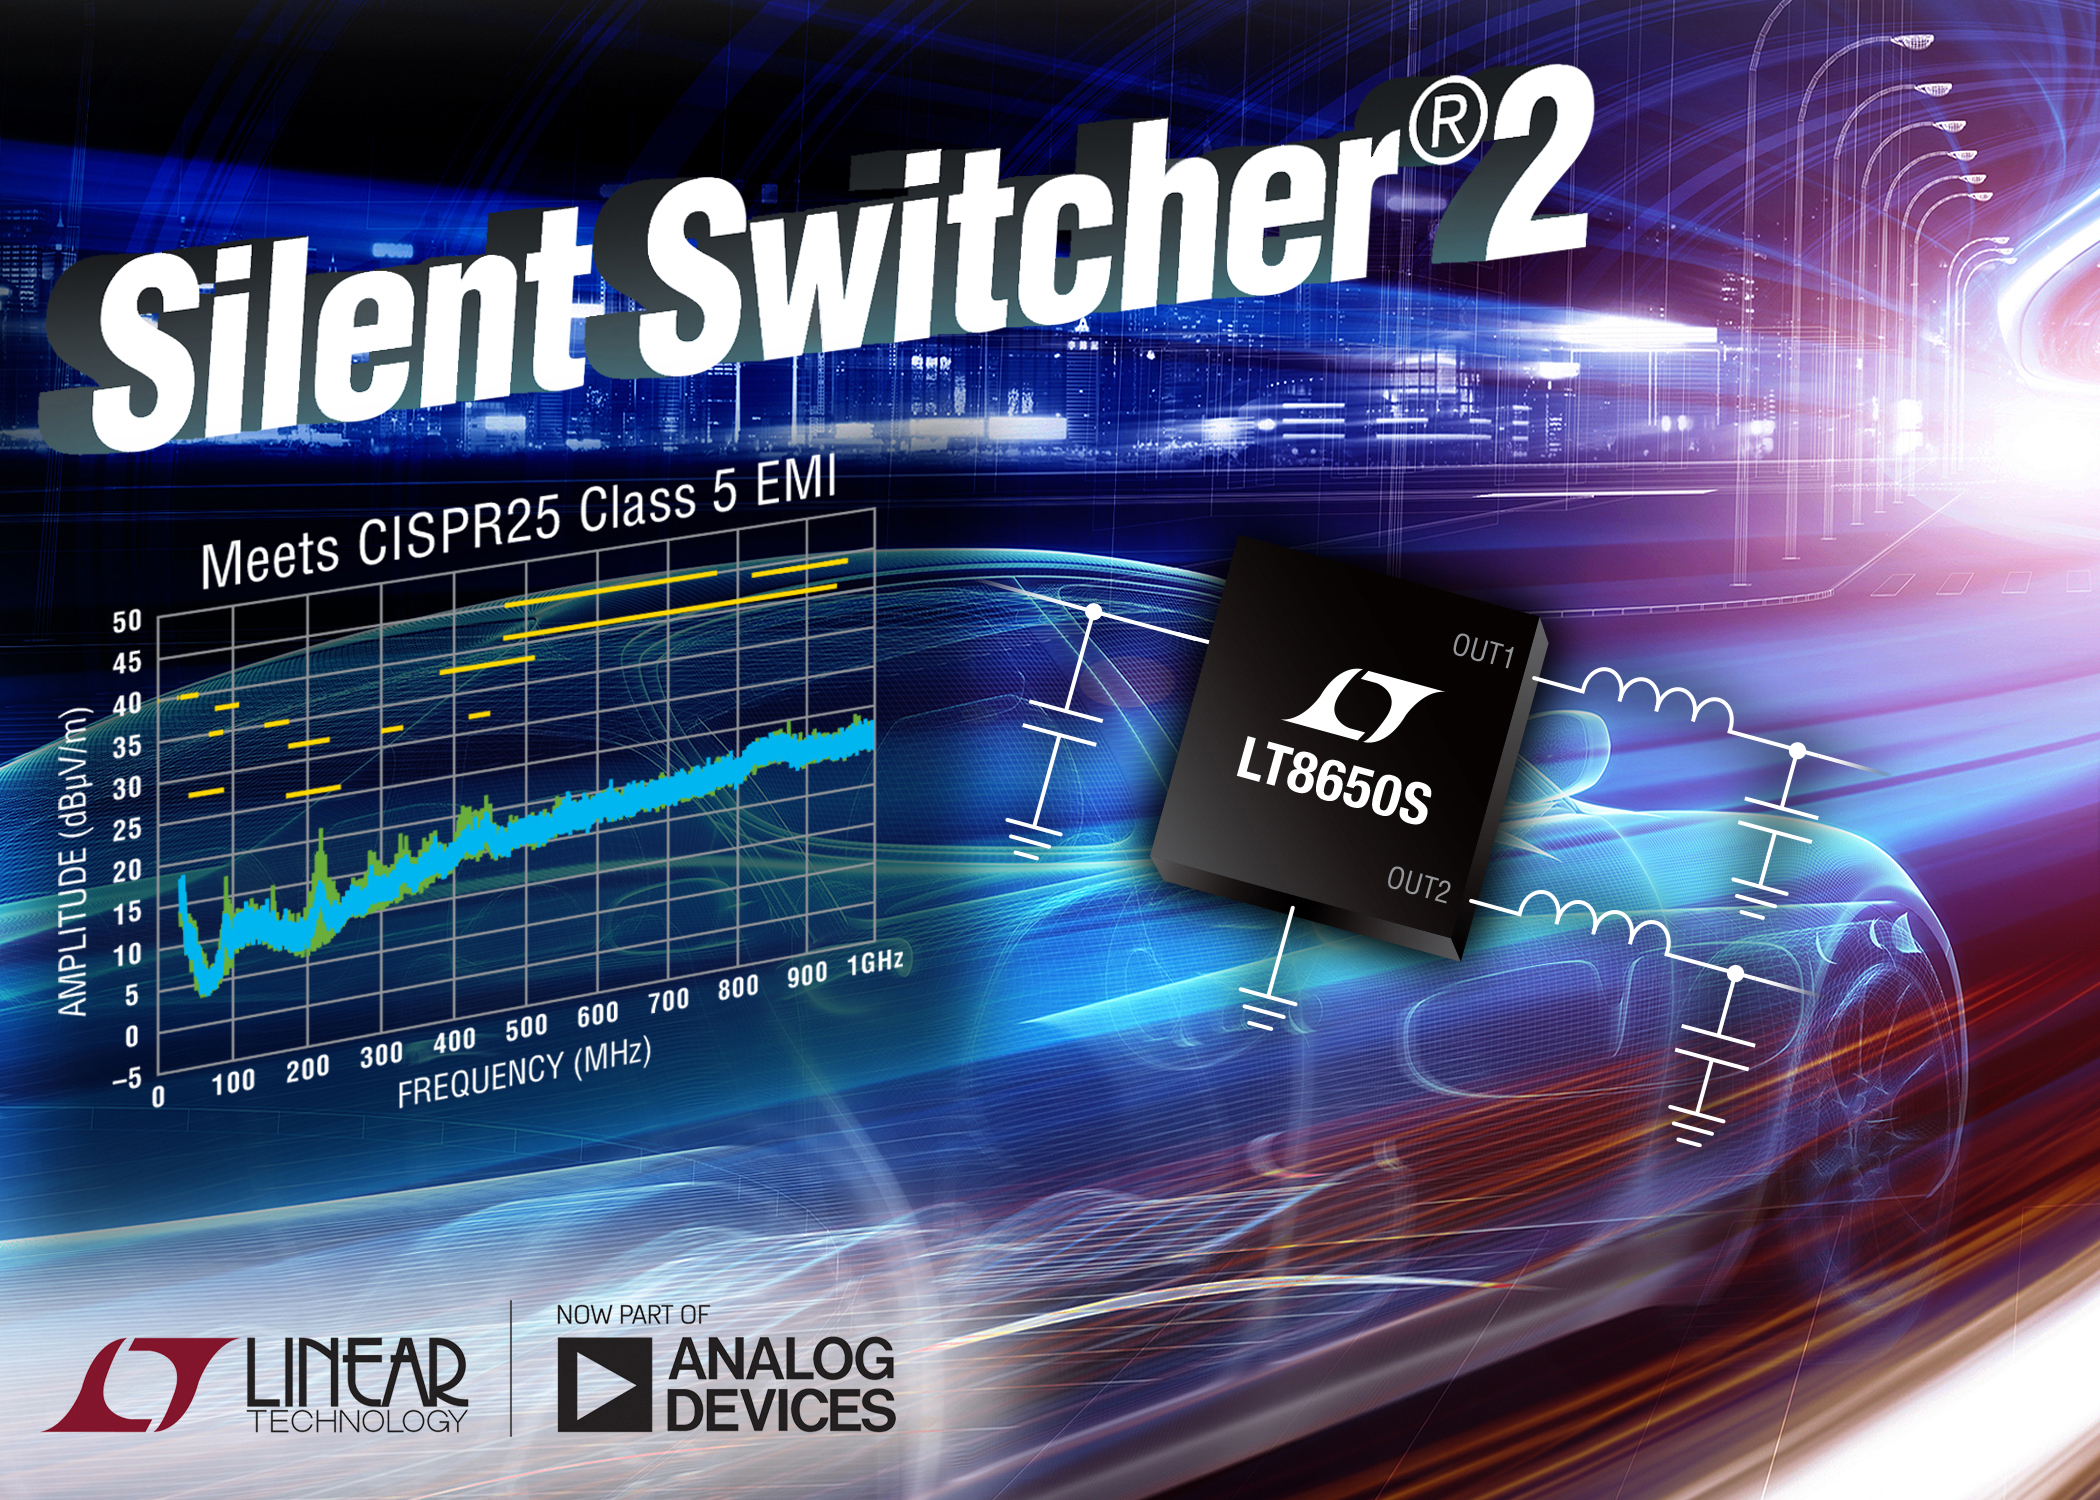 42V, dual 4A (IOUT), synchronous step-down silent switcher 2 delivers 94% efficiency at 2MHz and ultralow EMI emissions